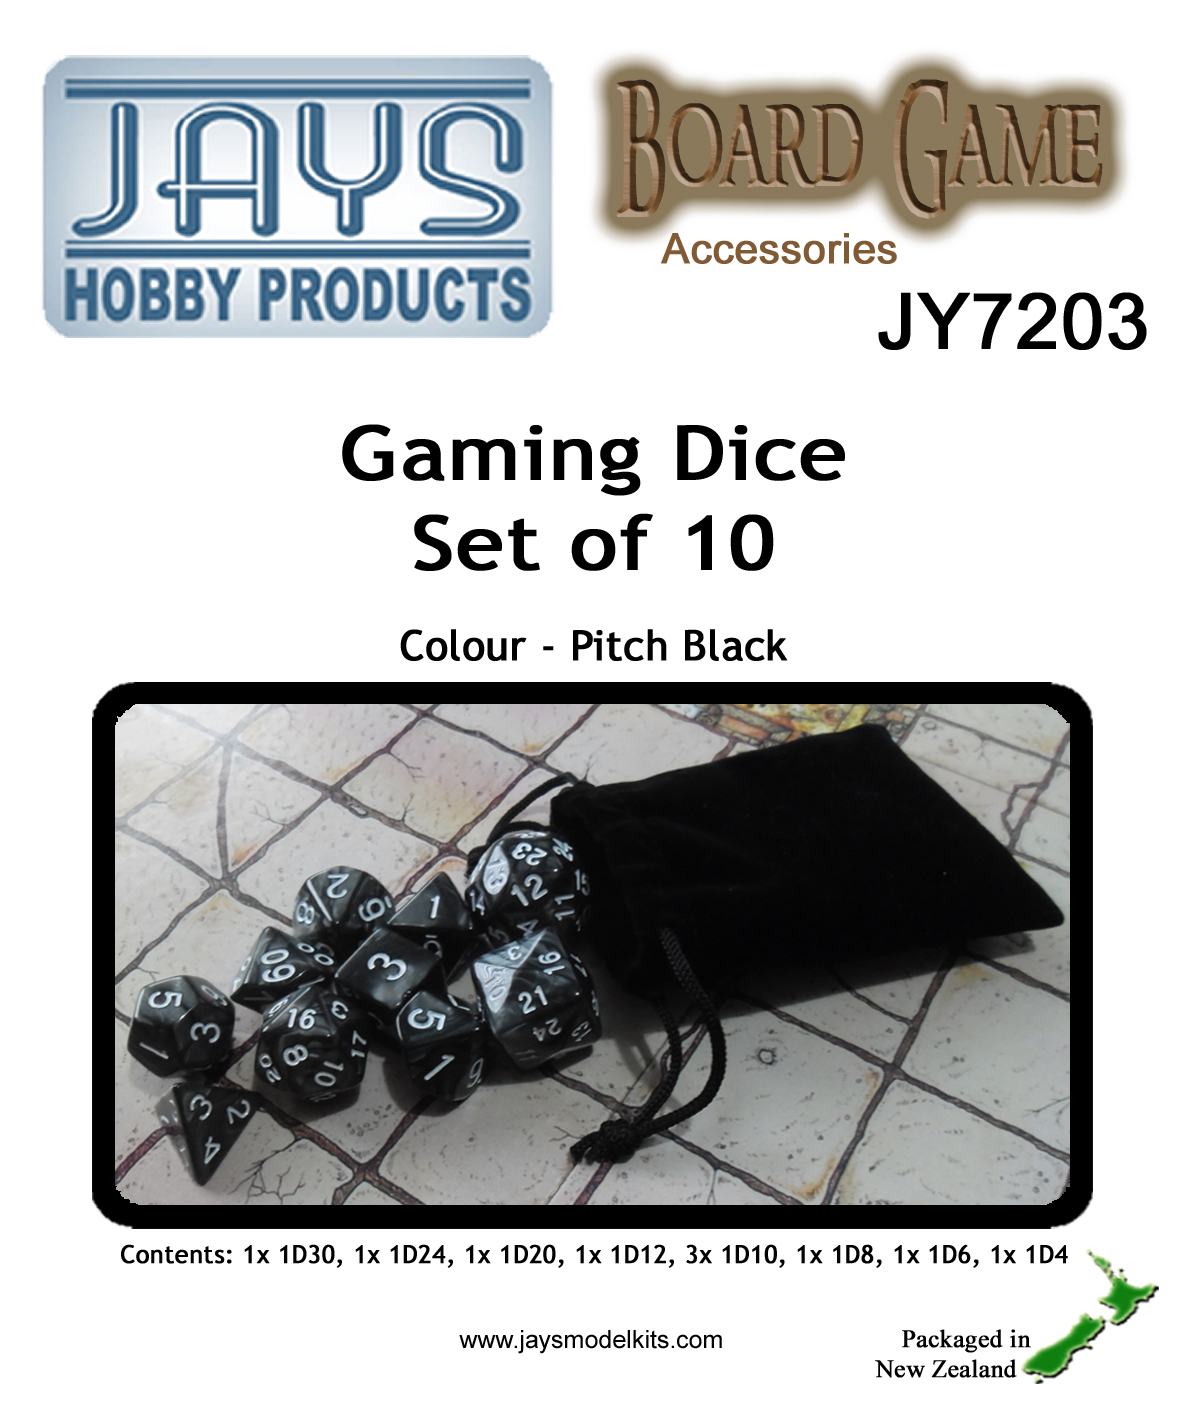 JY7203 Gaming Dice Set of Ten - Colour: Pitch Black